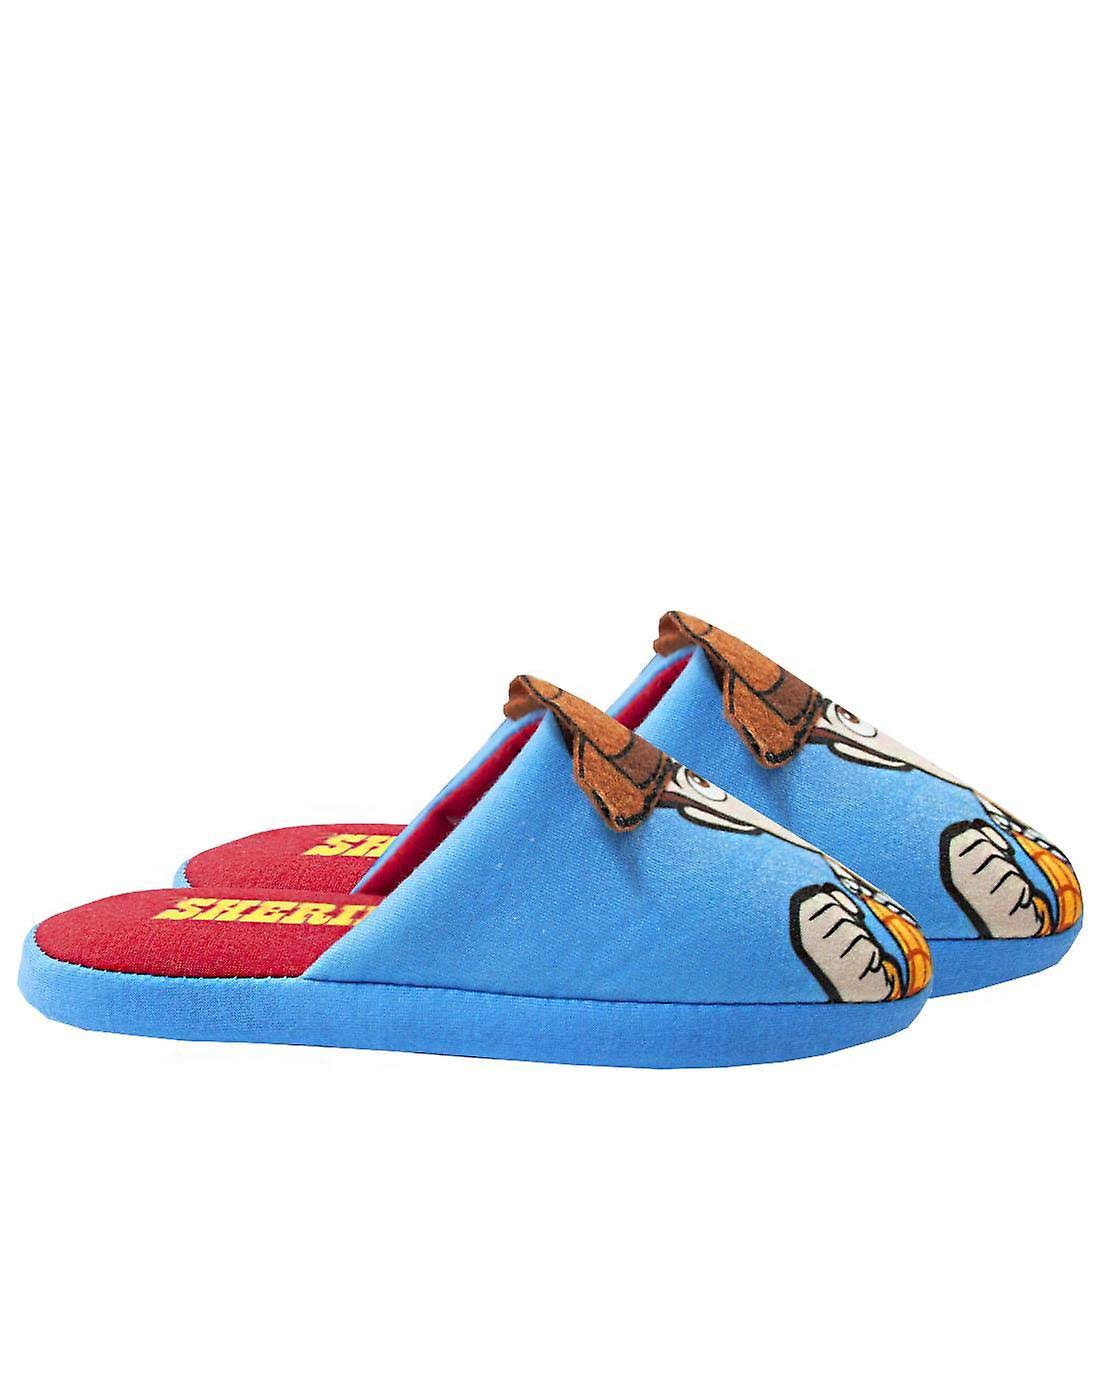 Toy Story Woody Boy's Slippers